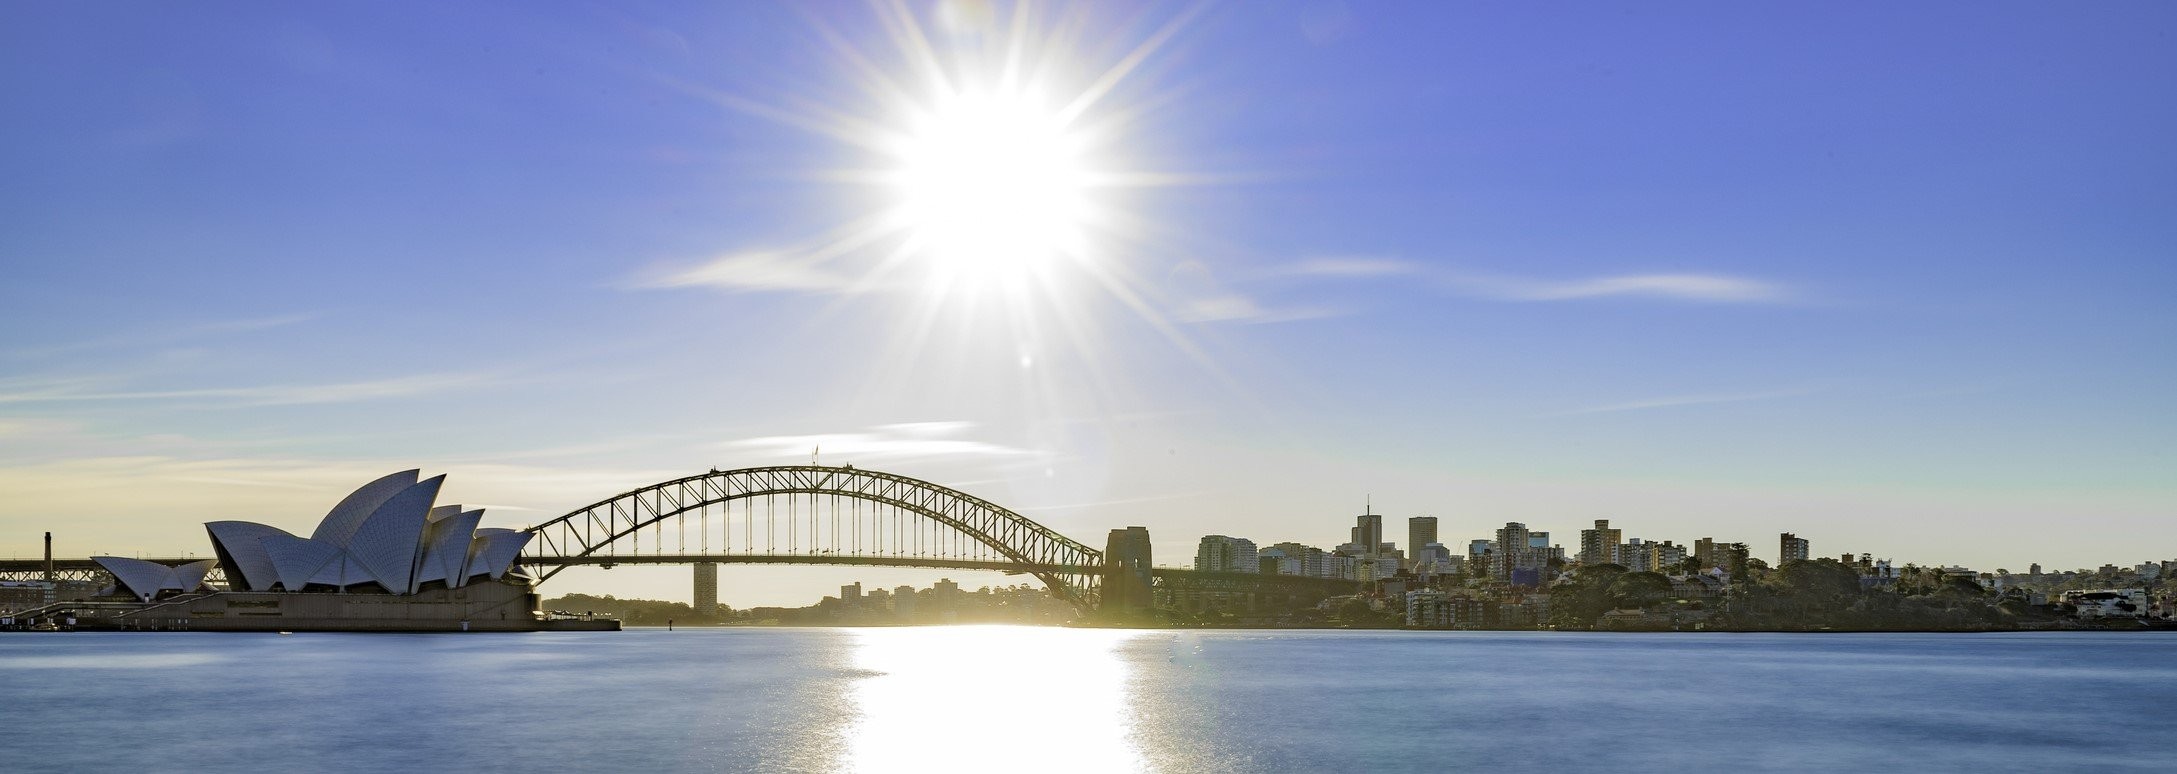 Photo of Sydney Harbour and Government owned public historic landmarks Sydney Opera House and Sydney Harbour Bridge.